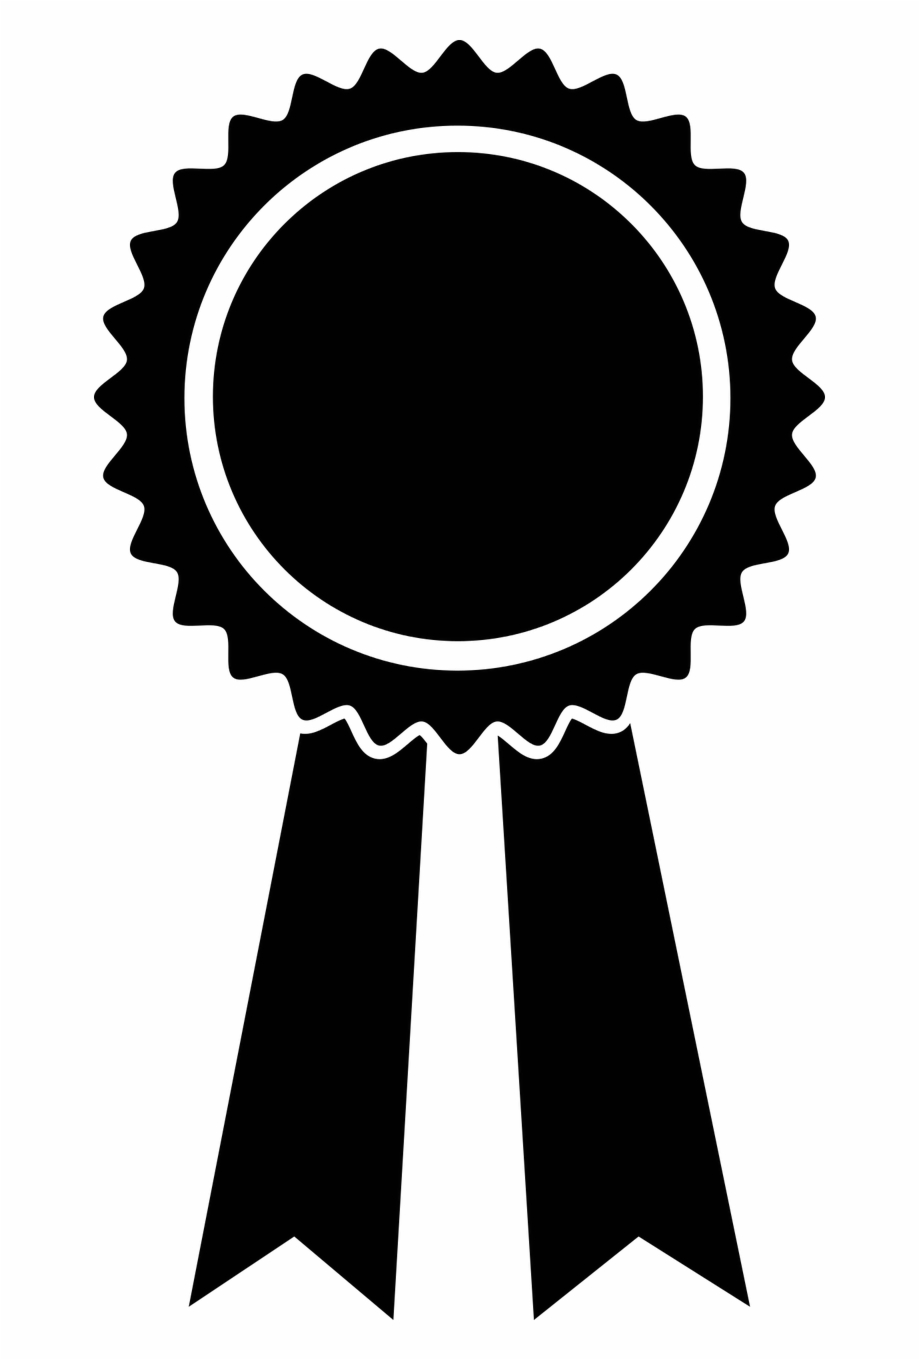 Black ribbon icon condolence. Award clipart